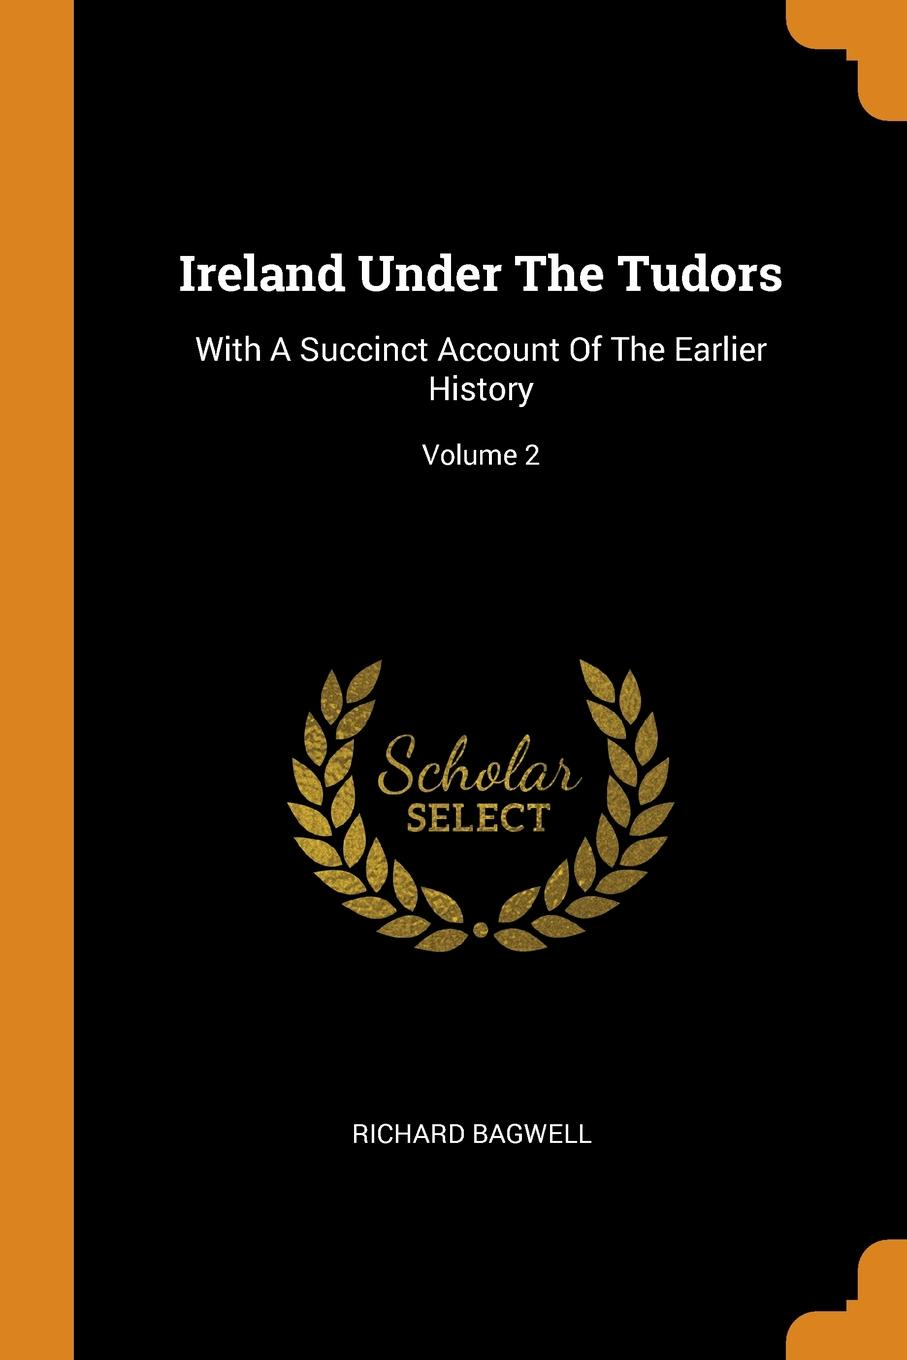 Richard Bagwell Ireland Under The Tudors. With A Succinct Account Of The Earlier History; Volume 2 bagwell richard ireland under the tudors with a succinct account of the earlier history vol 1 of 3